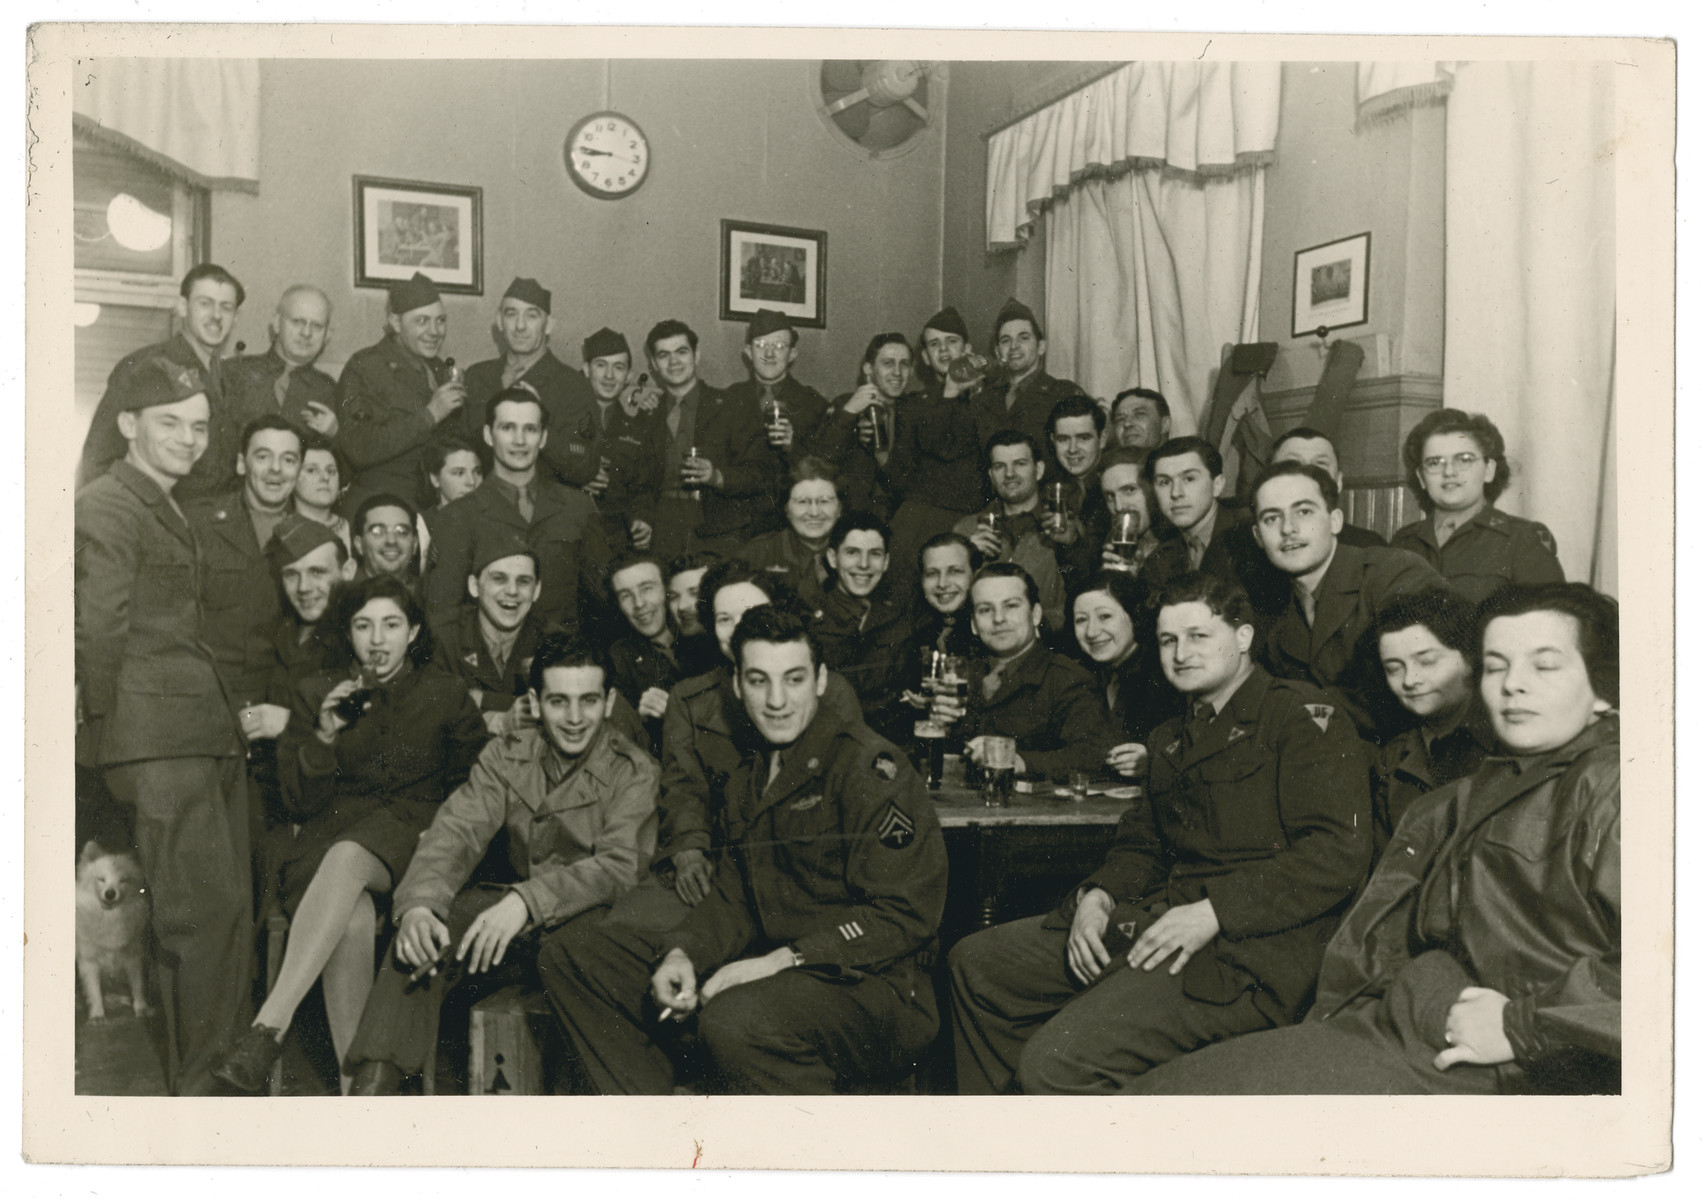 Group portrait in Otto's Pub in Offenbach of  some of the staff of the American War Department's Civil Censorship Division.